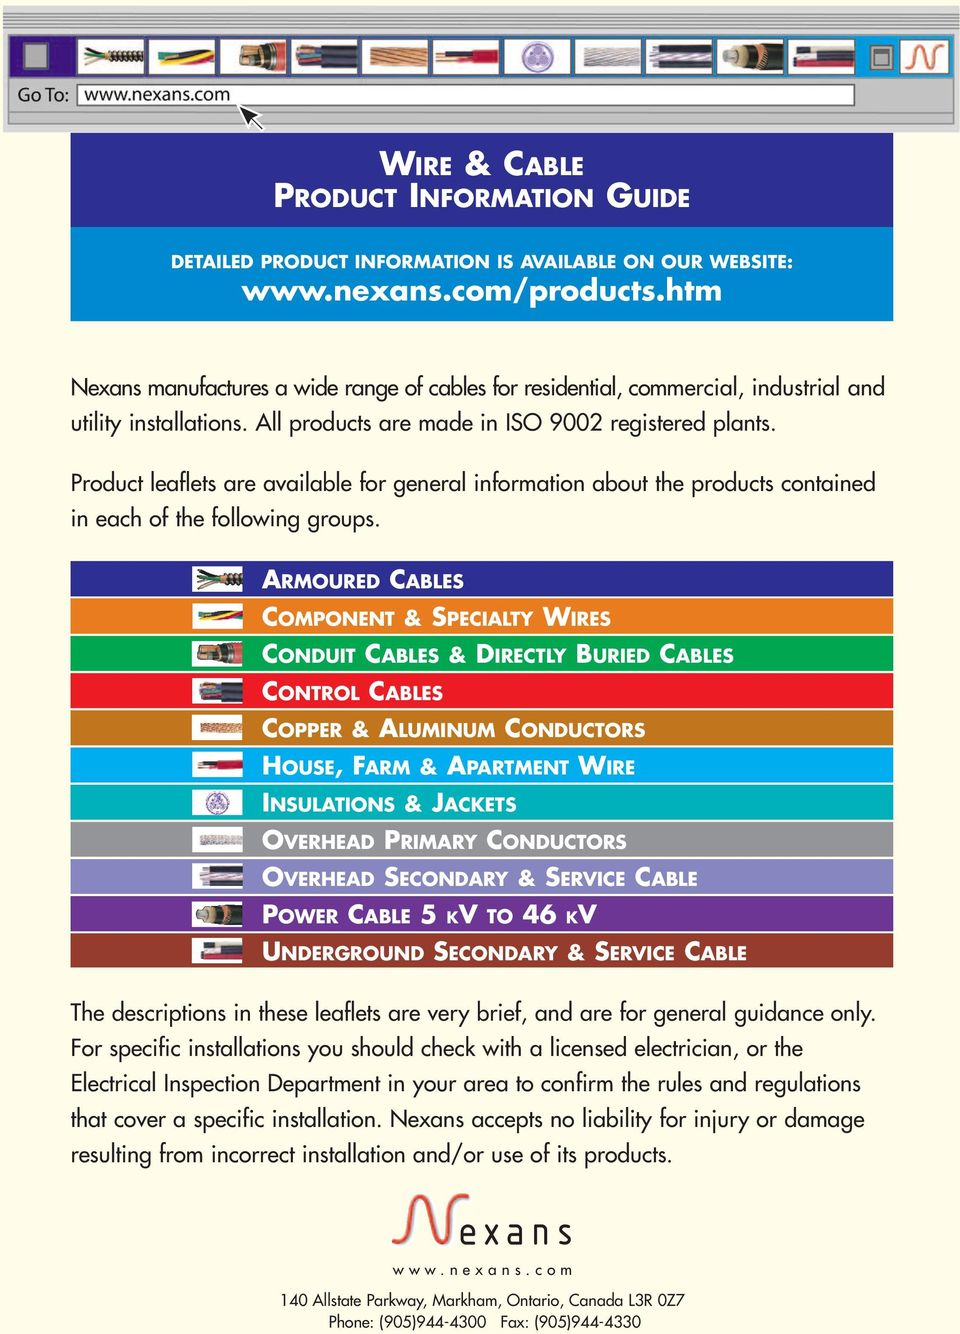 Wire Cable Product Information Guide Pdf Conduit Wiring Armoured Cables Component Specialty Wires Directly Buried Control Copper